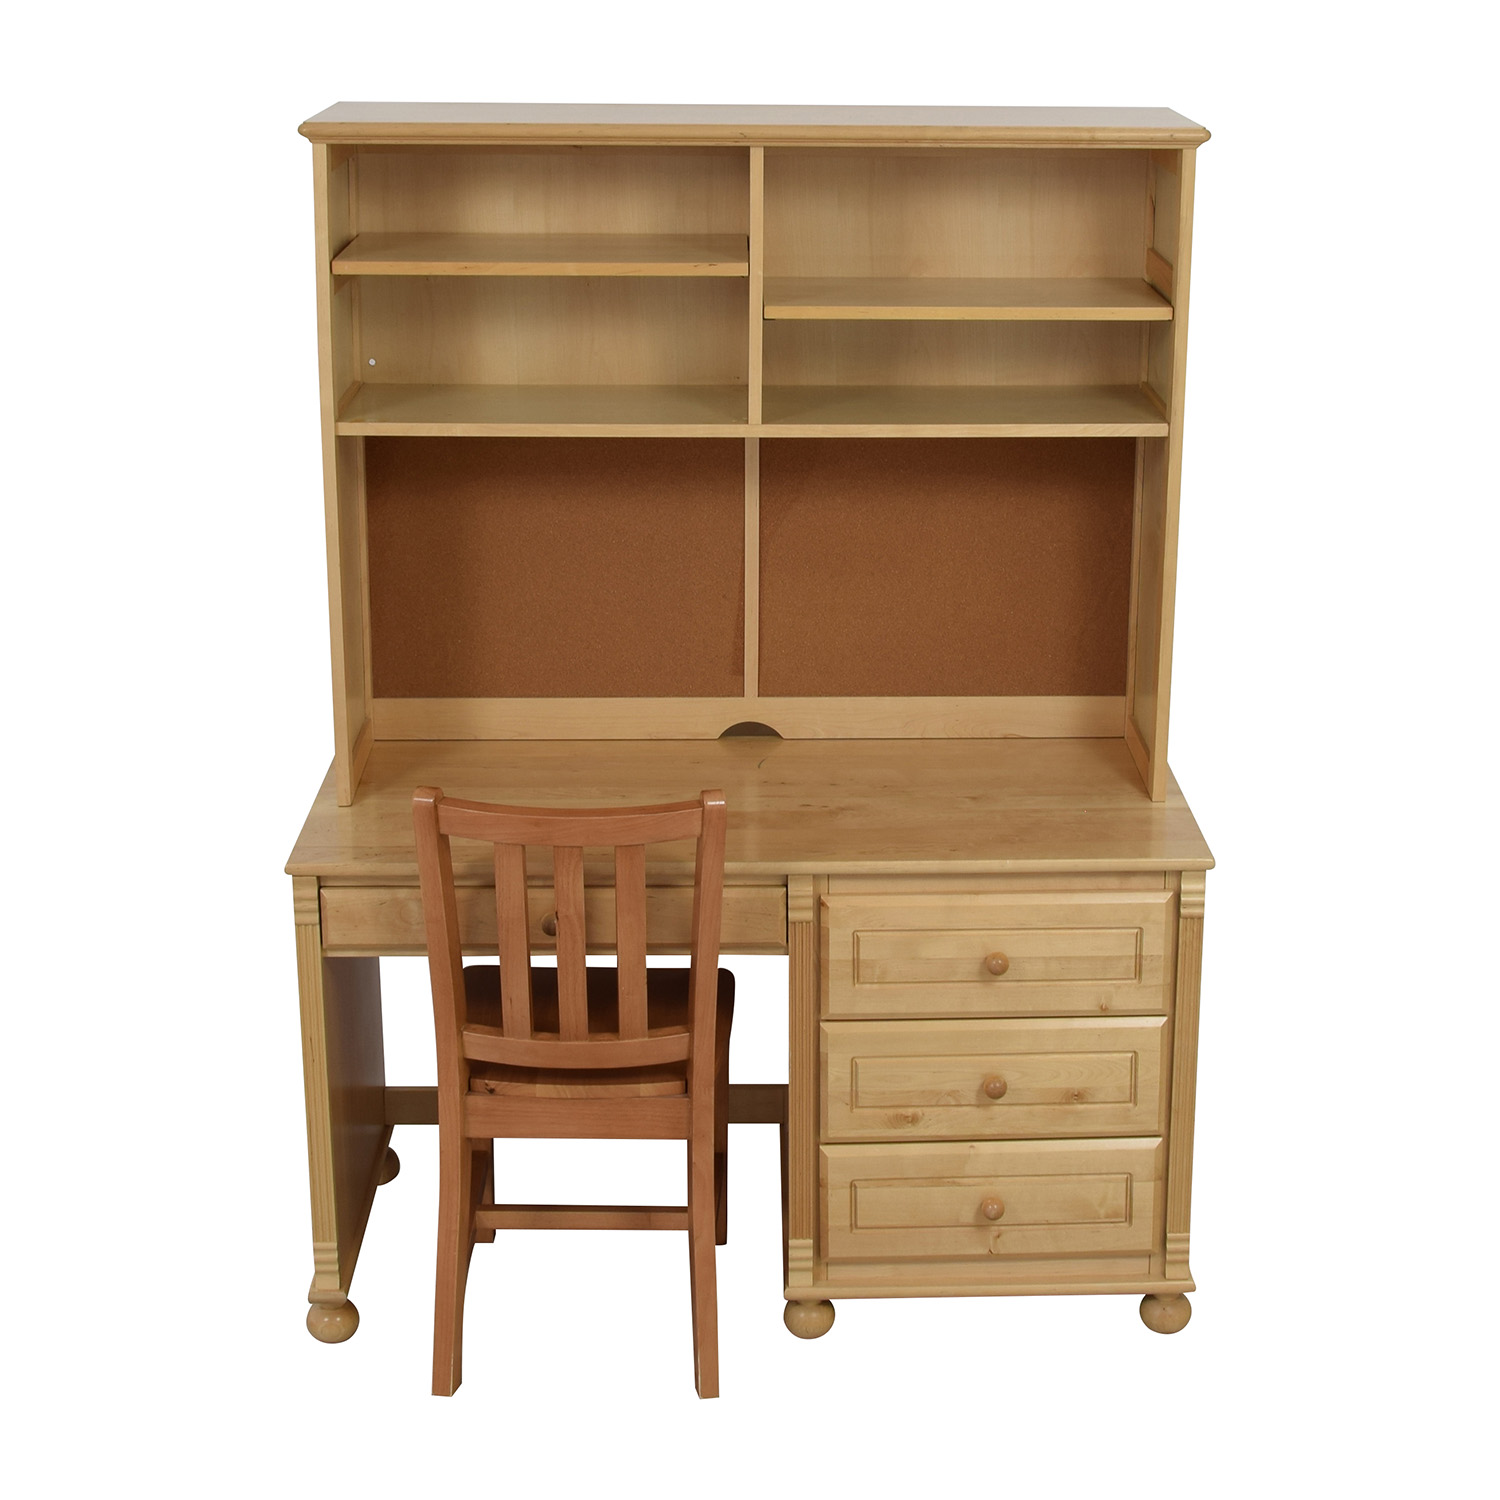 Bellini Bellini Jessica Student Desk and Hutch coupon